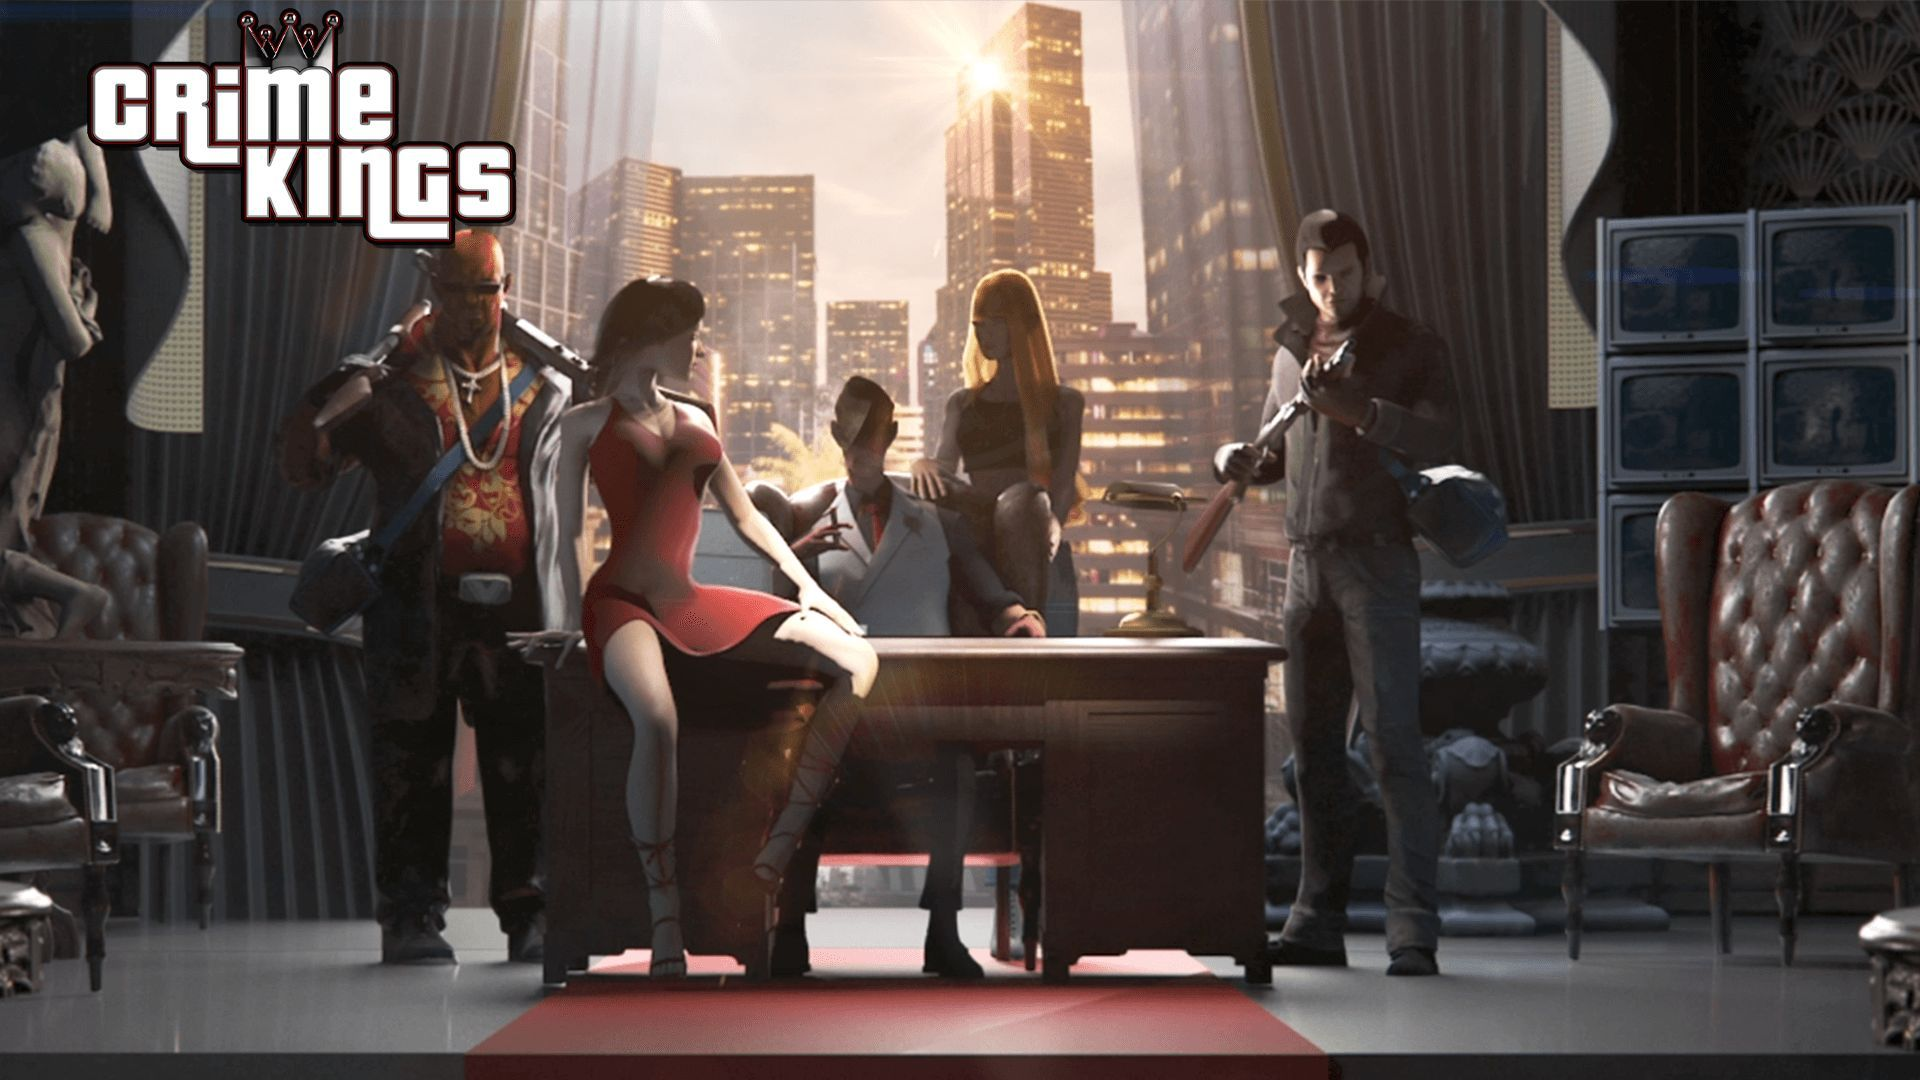 Download Free Android Game Crime Kings Mafia City In 2020 Free Android Games Android Games Mafia